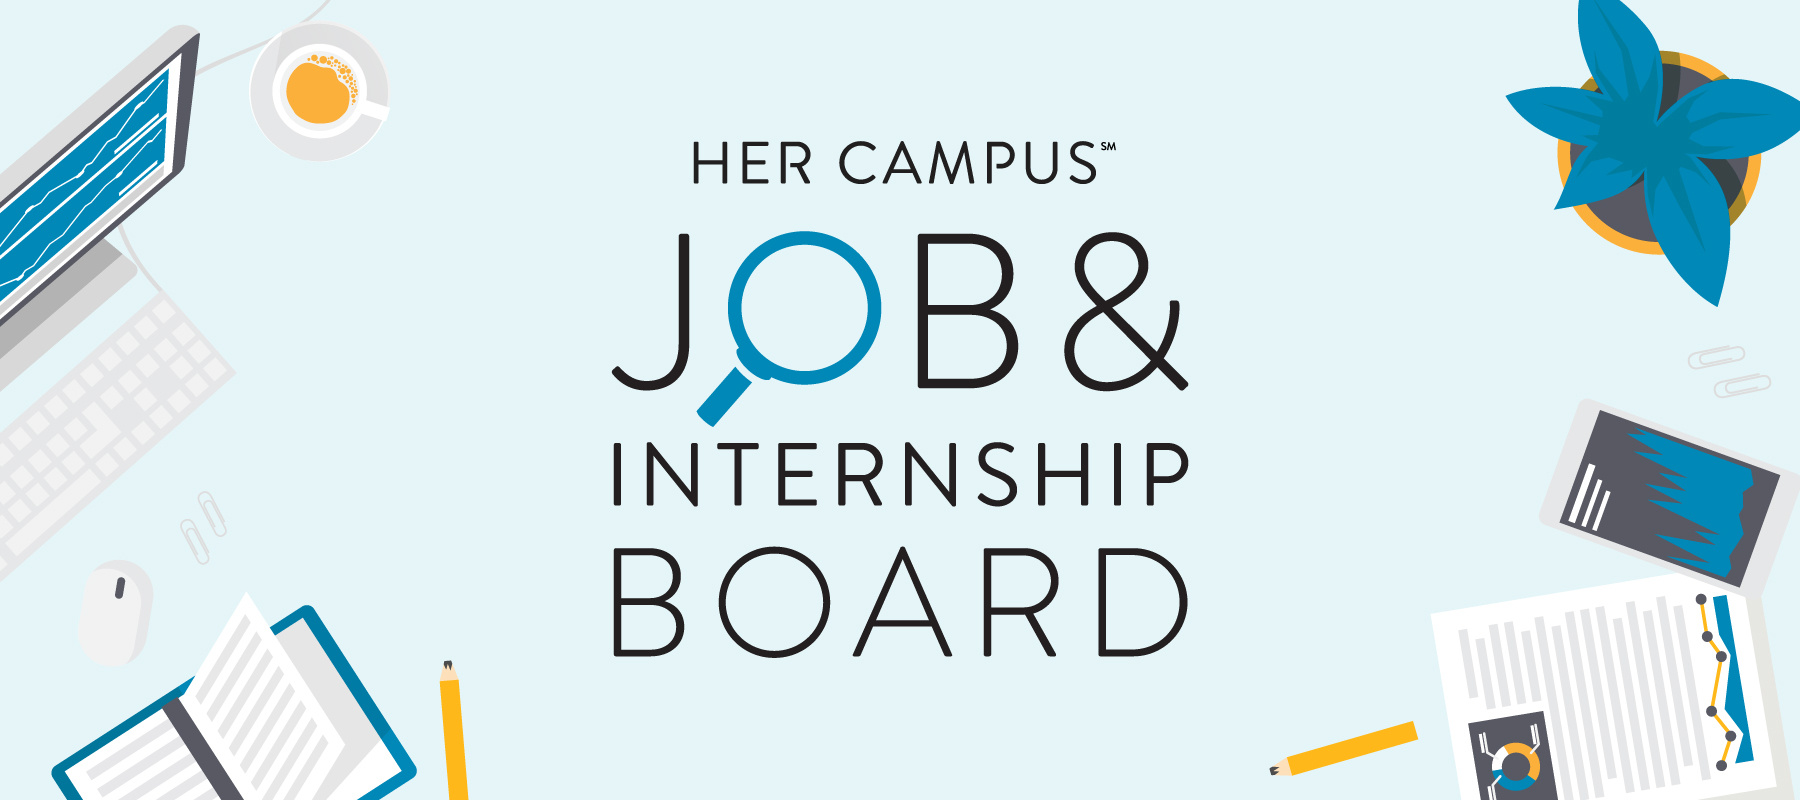 job internship board her campus